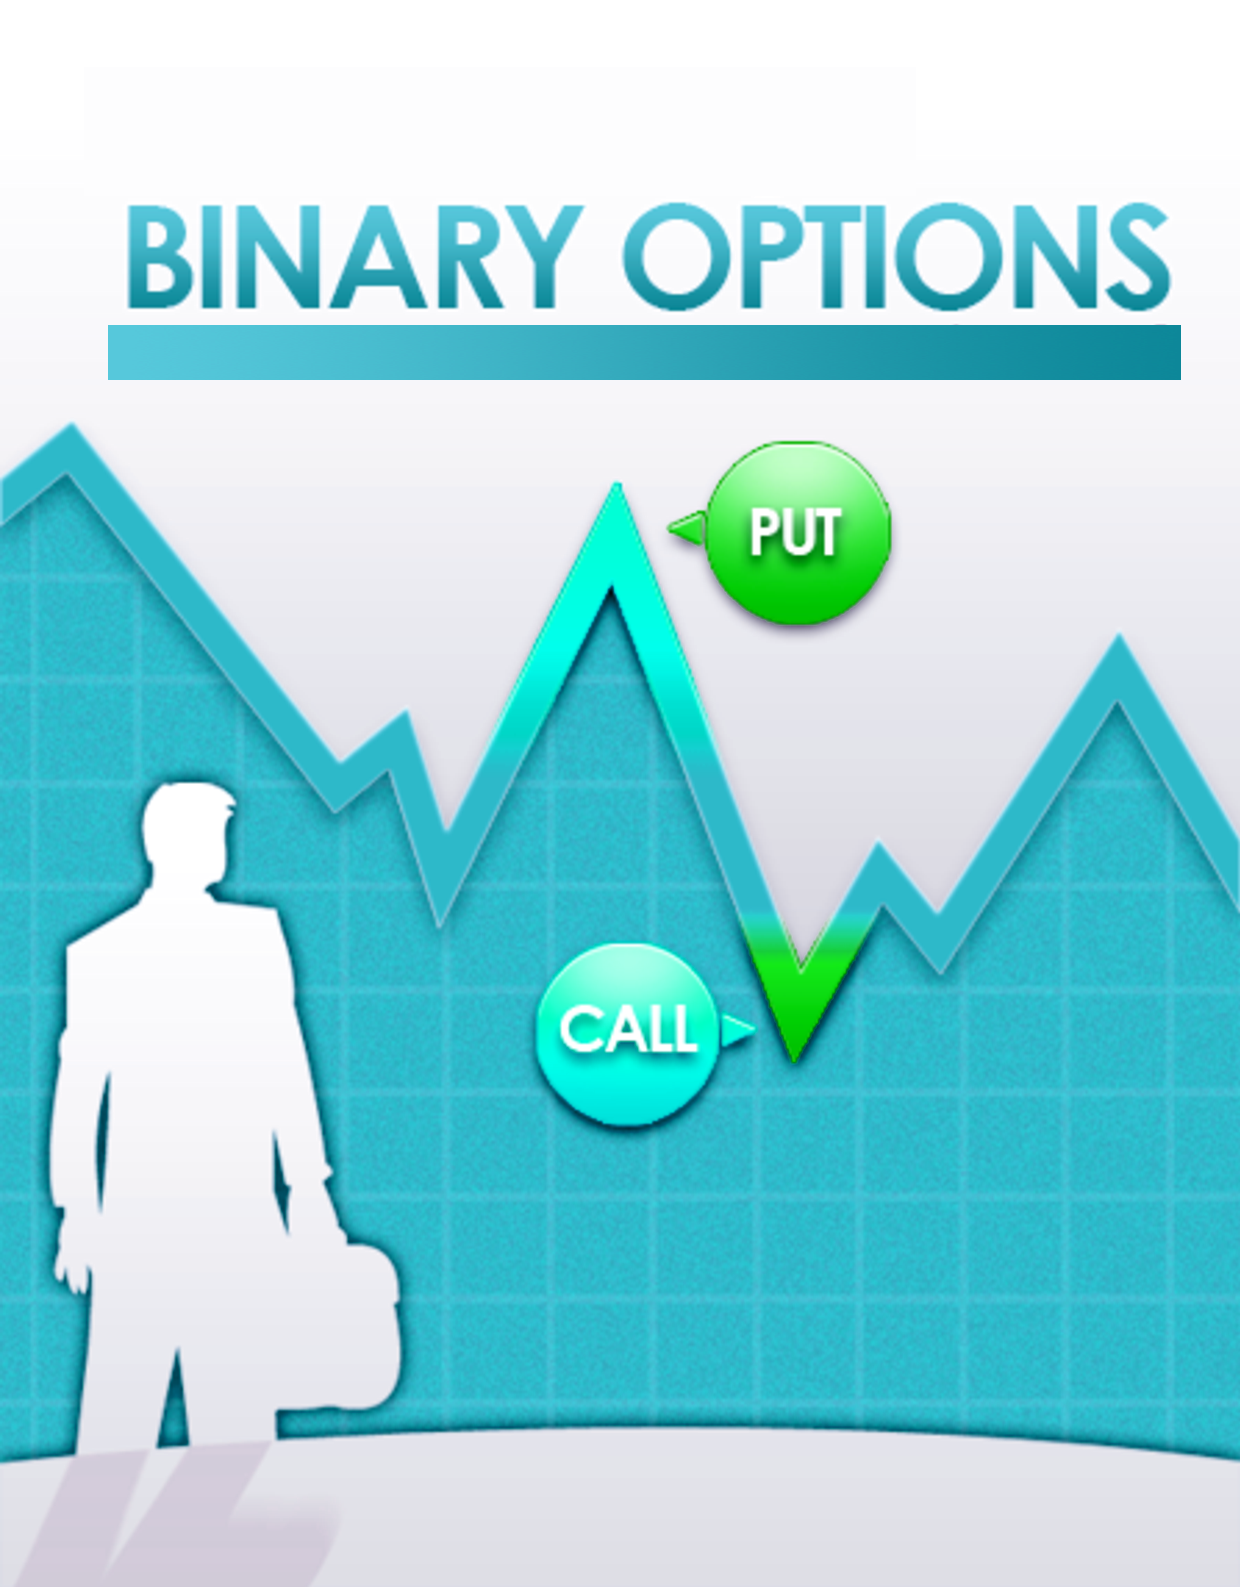 All binary options are scams